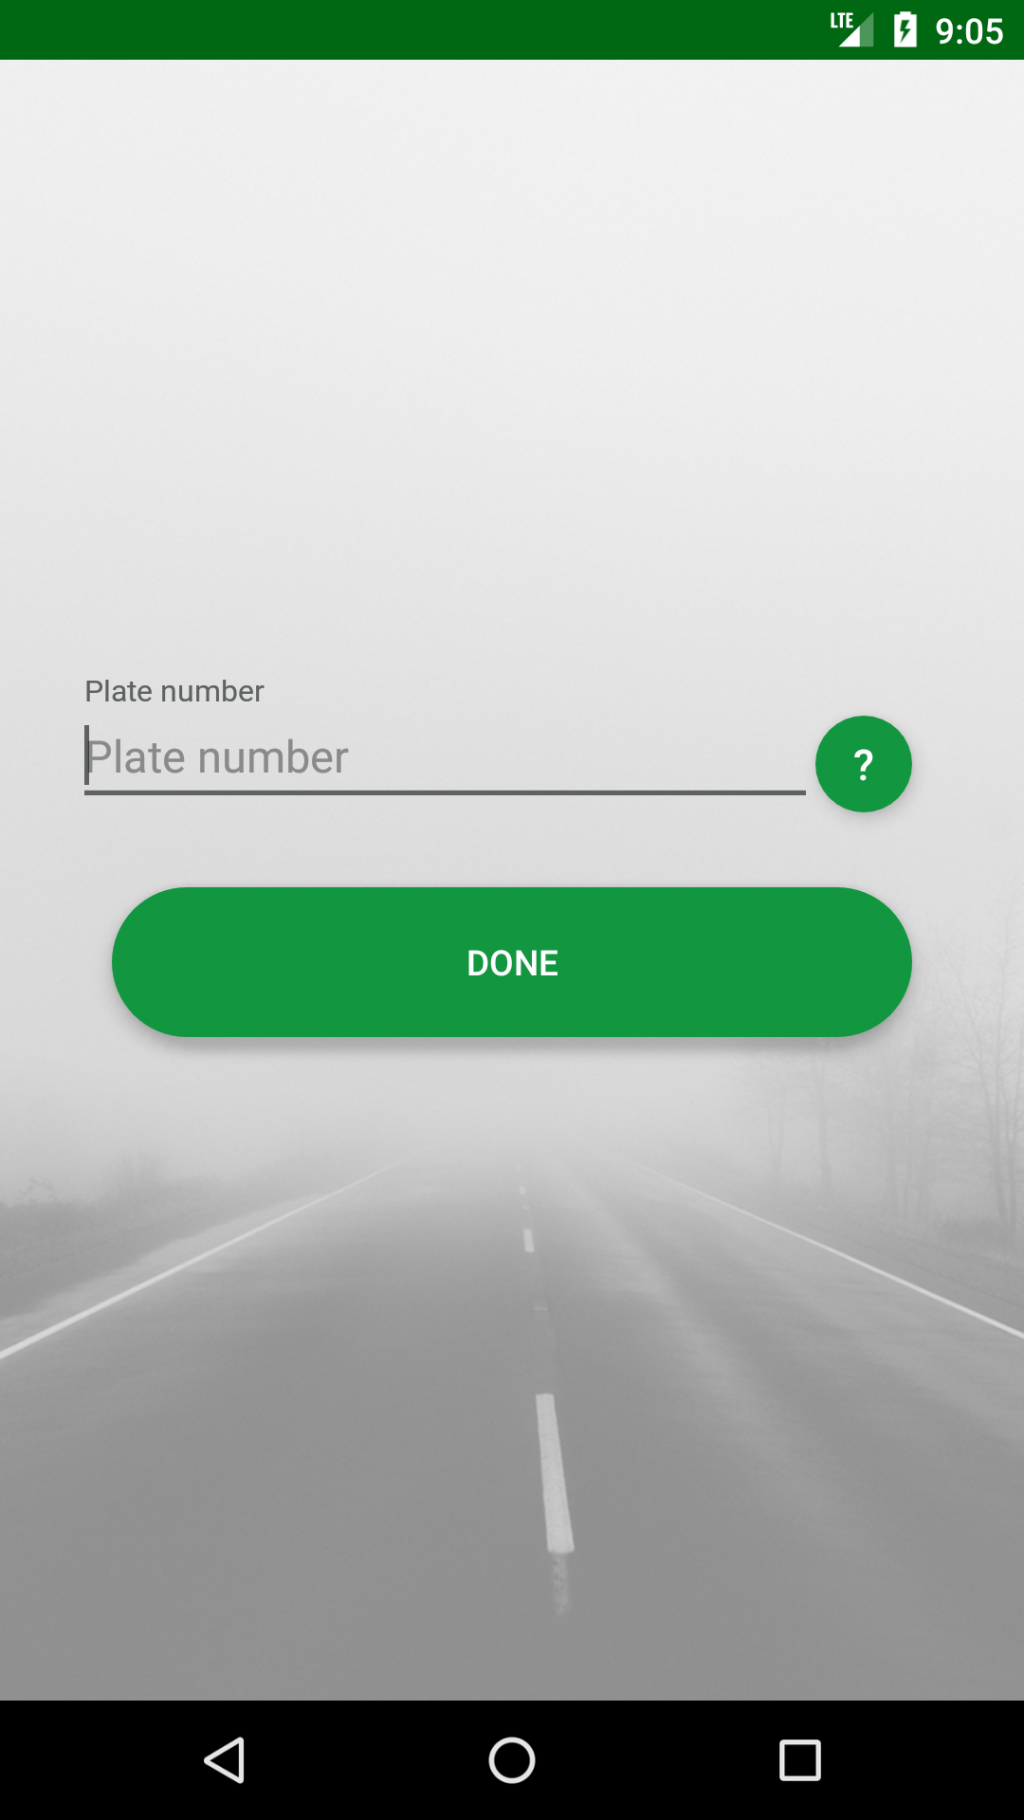 Fill the blank with your plate number